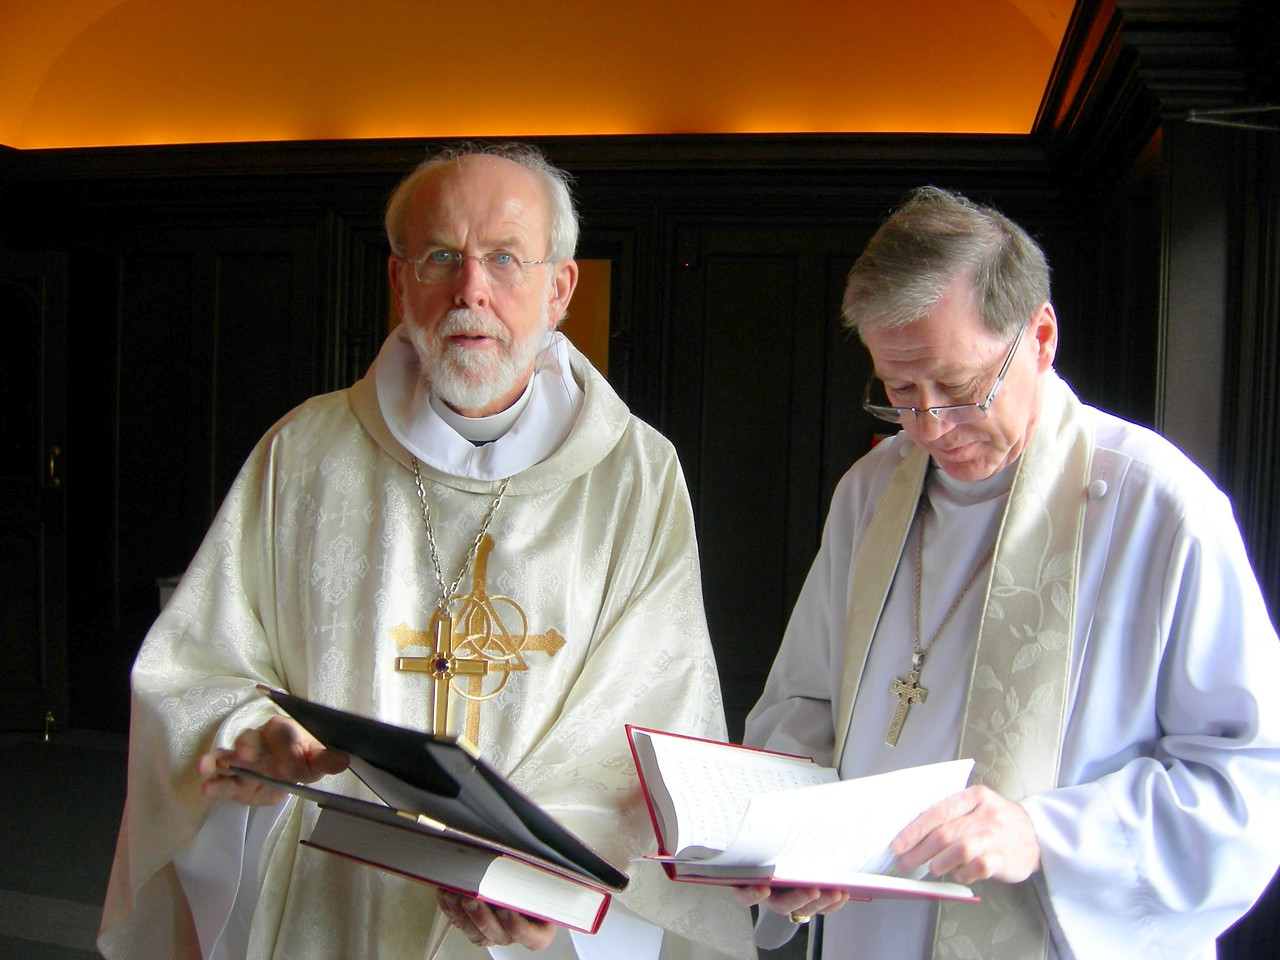 Presiding Bishop Mark Hanson of the Evangelical Lutheran Church in America, left, and Archbishop Fred Hiltz of the Anglican Church of Canada, prepare for the May 1 worship celebration.